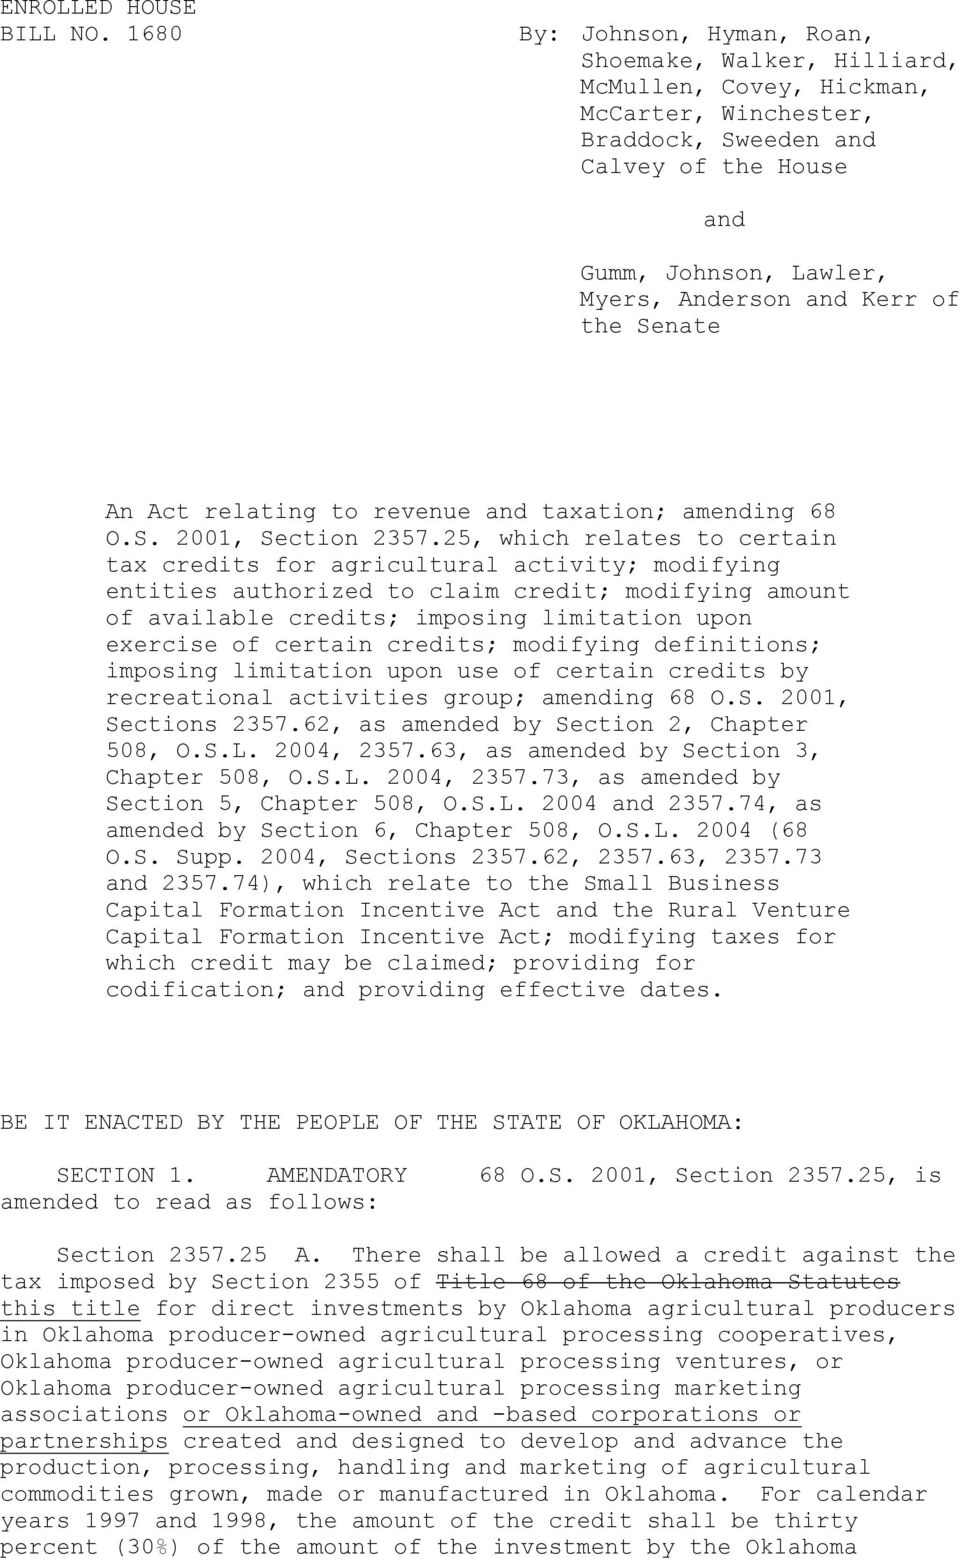 Kerr of the Senate An Act relating to revenue and taxation; amending 68 O.S. 2001, Section 2357.